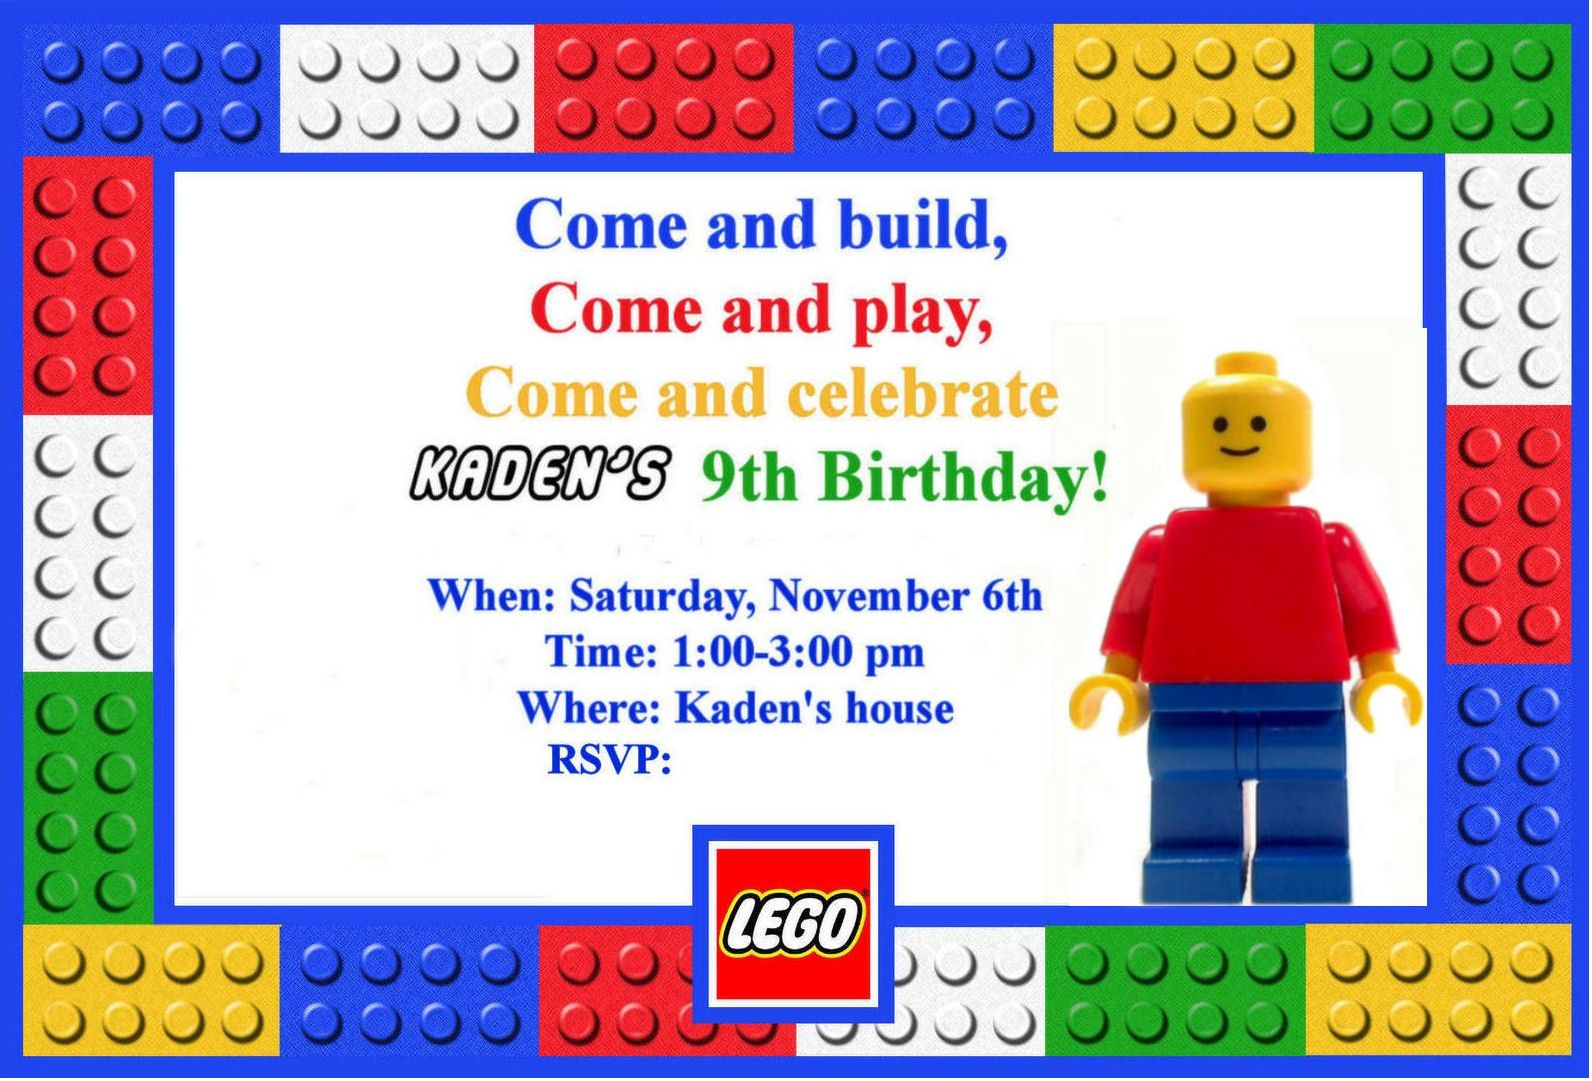 Dazzling Fabulous Colorful Lego Party Invitation Template For Kids